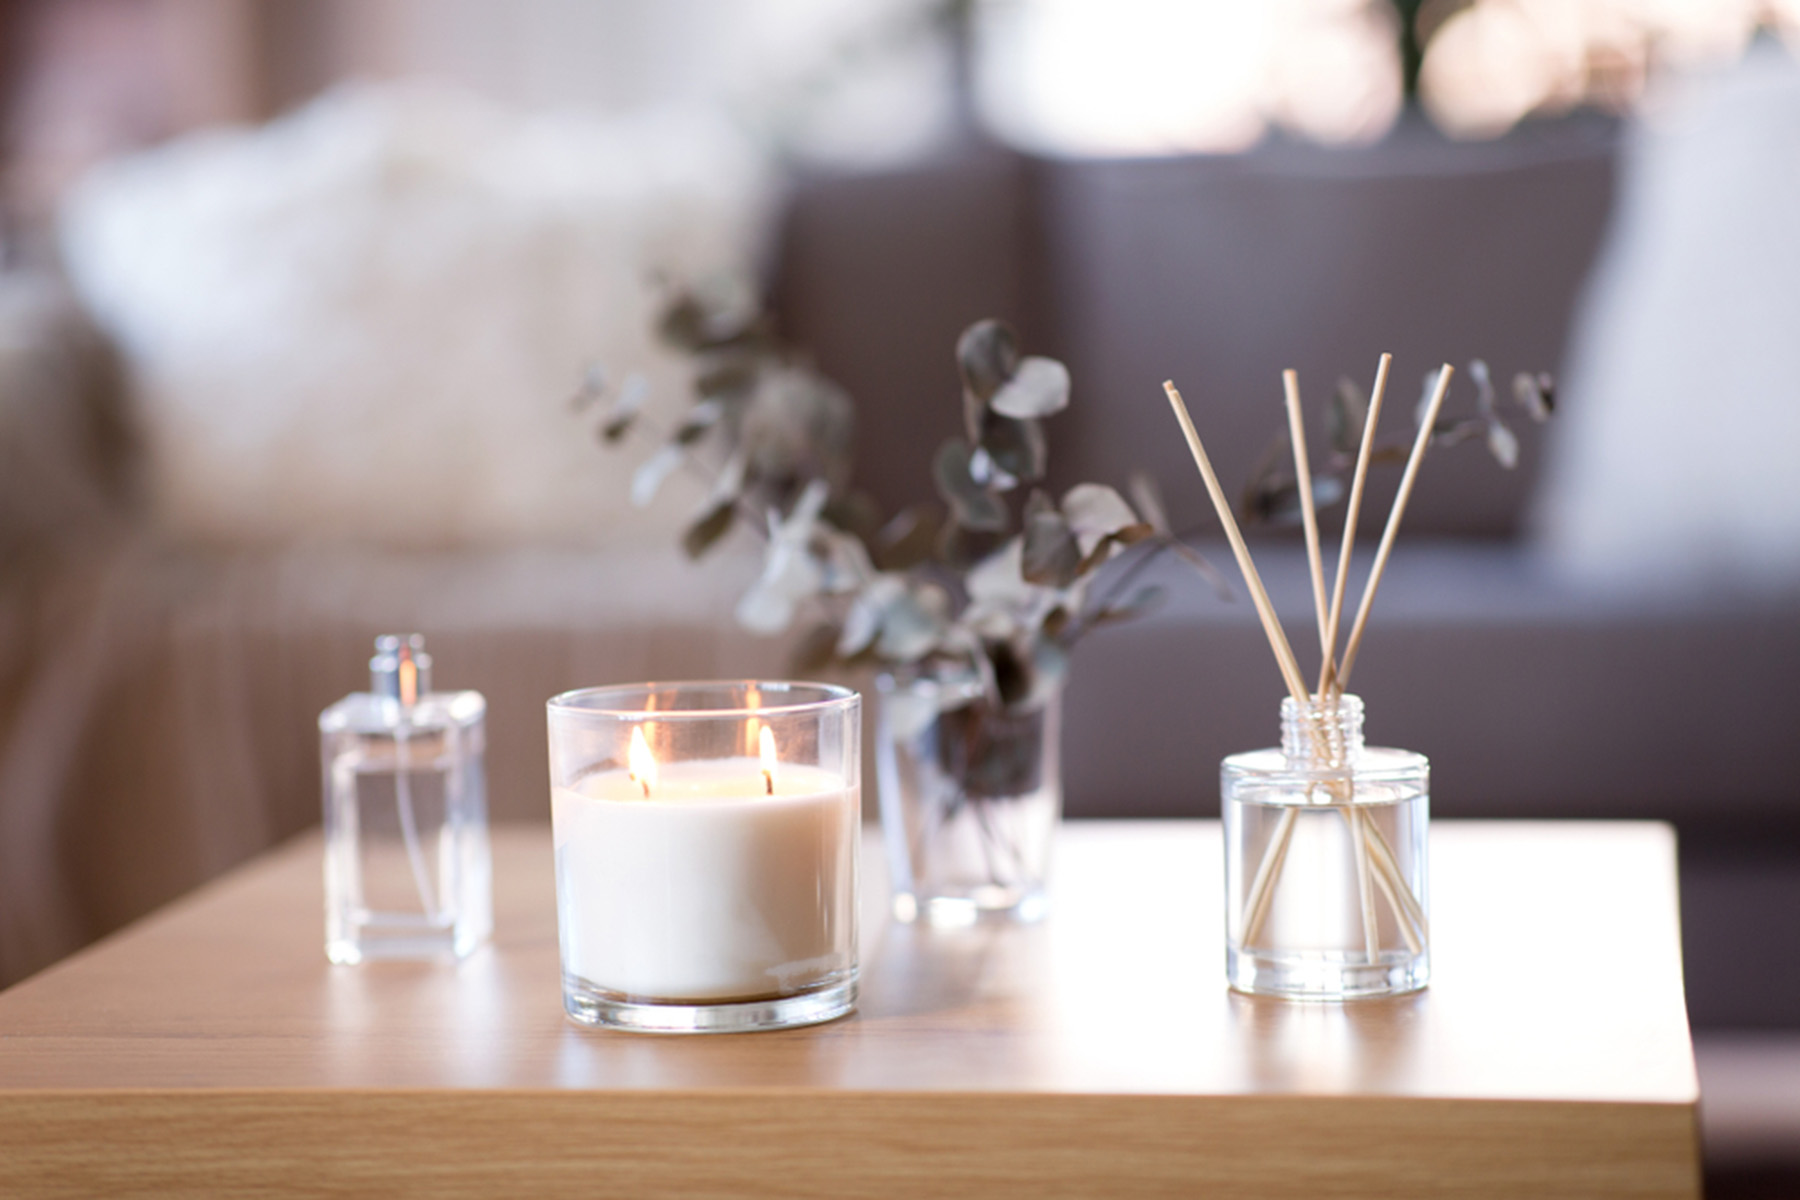 Our Guide To Home Fragrances 5 Common Types And How Best To Use Them